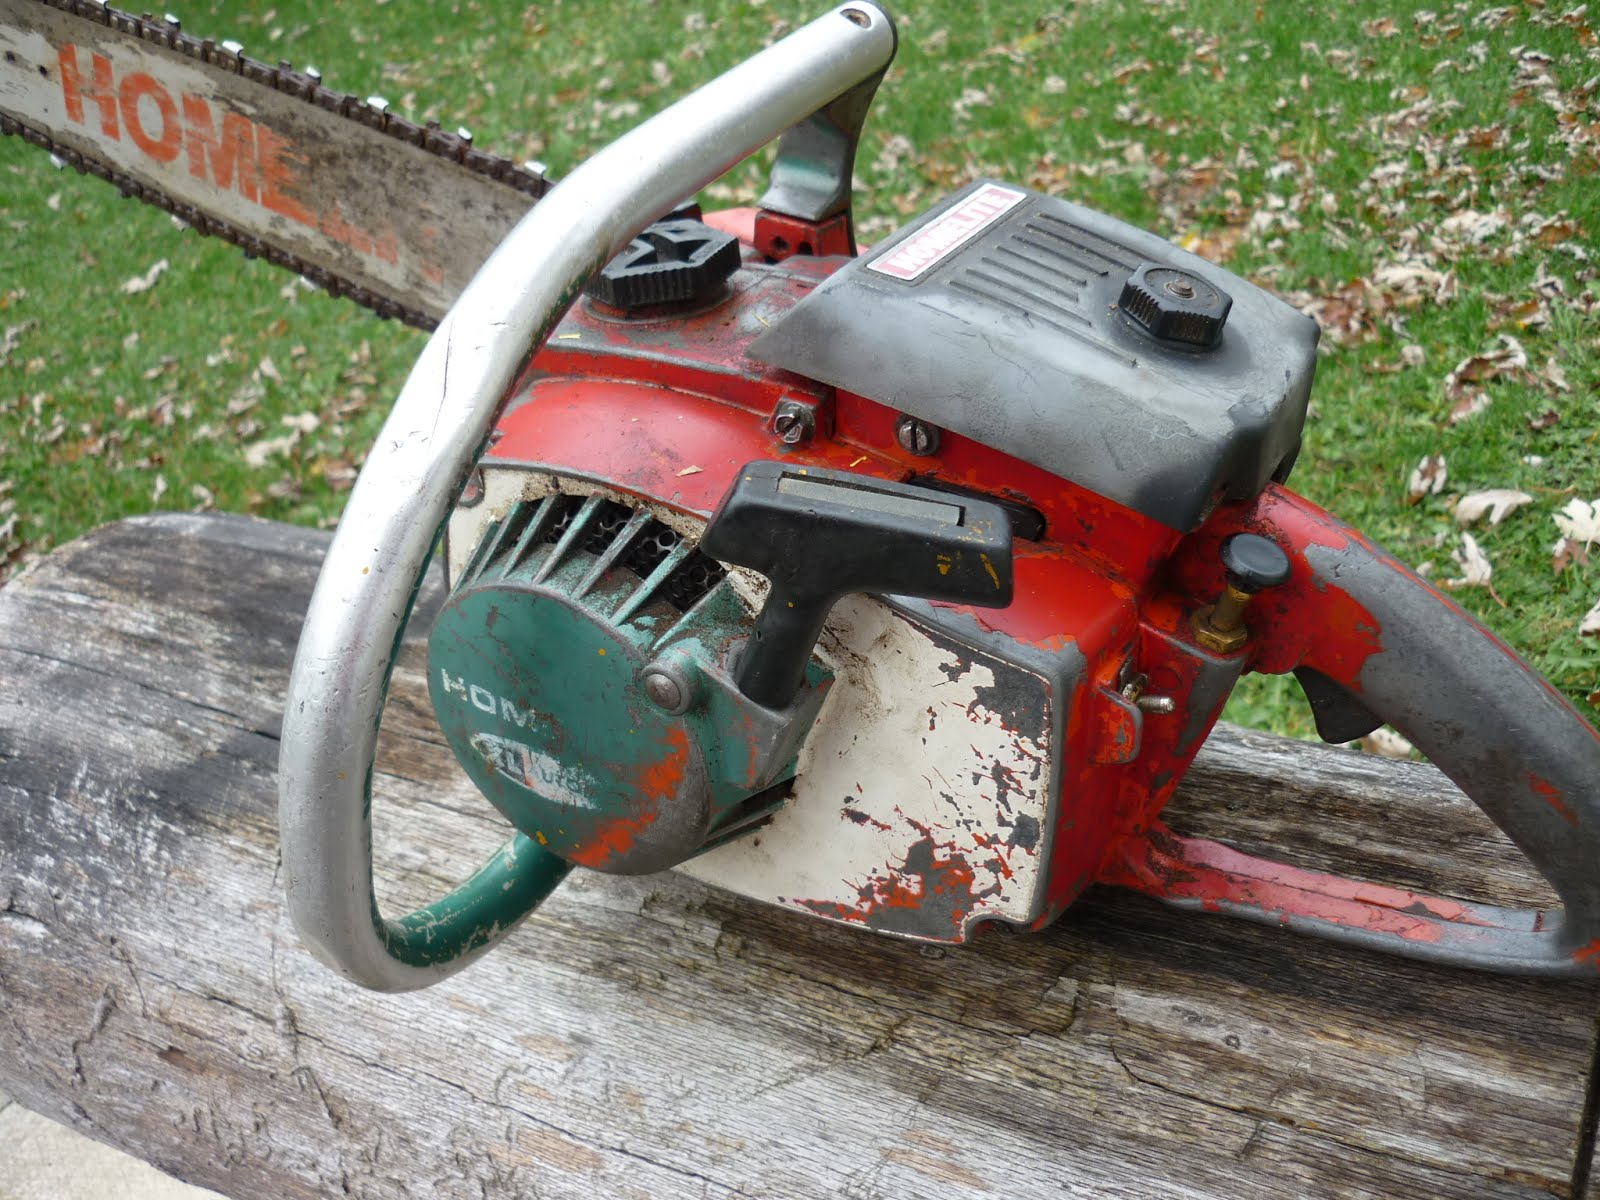 Old Homelite Chain Saw Related Keywords & Suggestions - Old Homelite